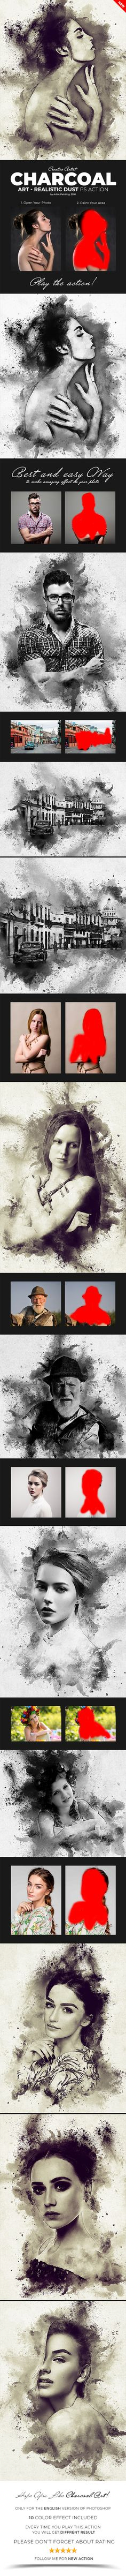 Charcoal Art - Realistic Dust Photoshop Action - Photo Effects Actions